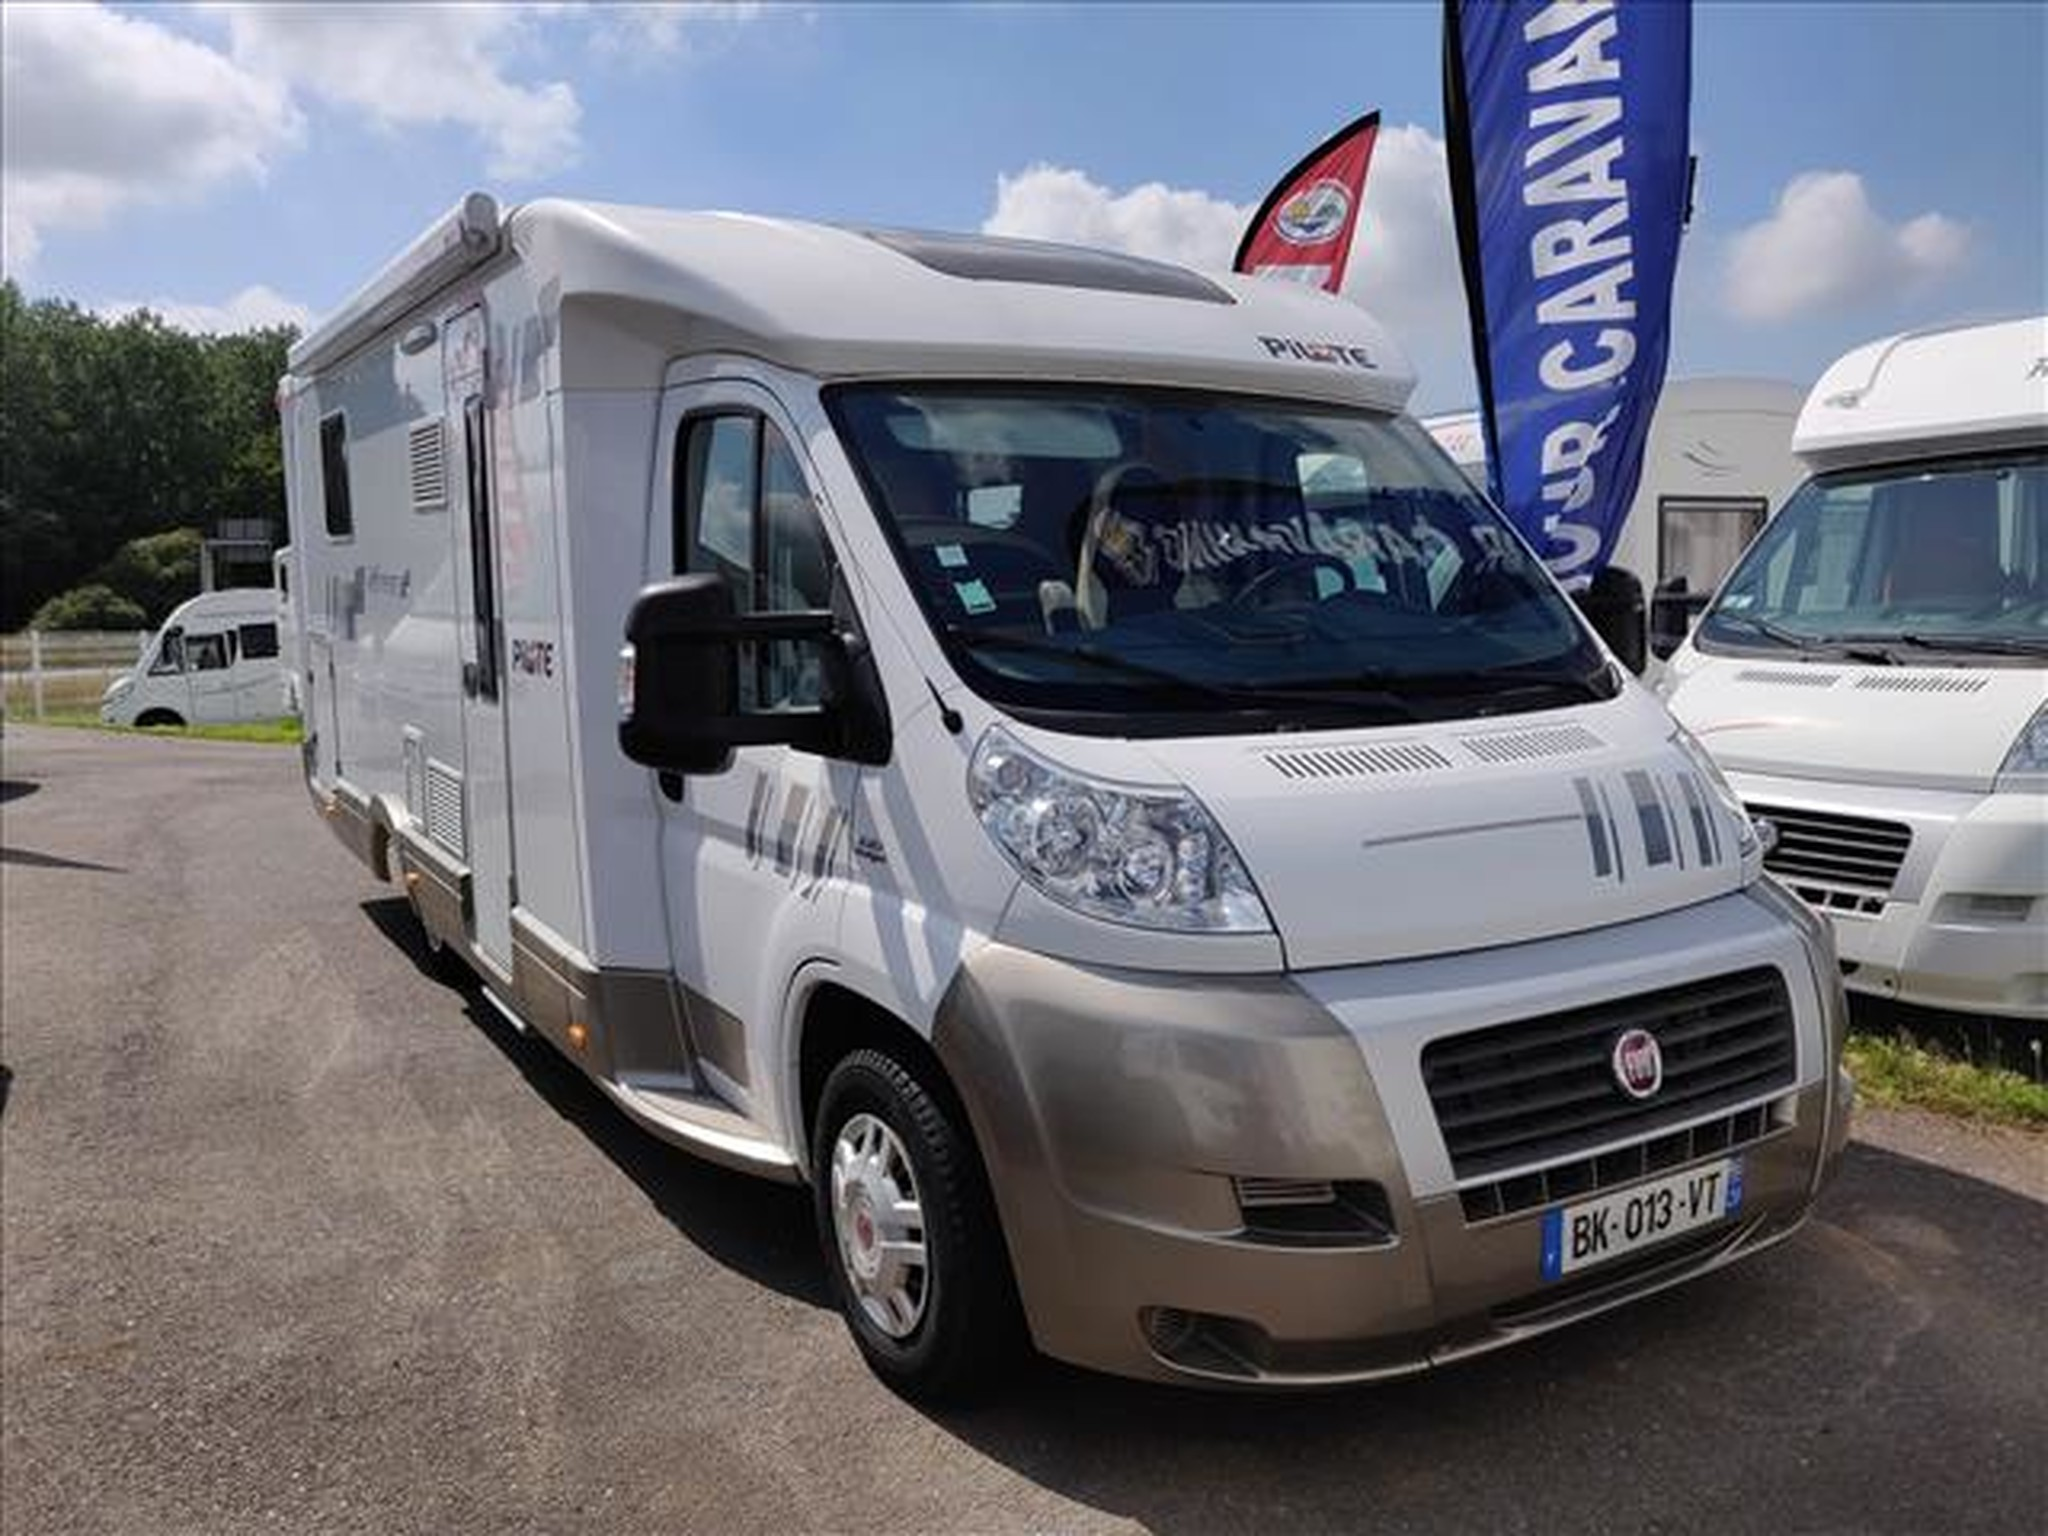 Camping-car PILOTE REFERENCE P 734 LCR FIAT DUCATO 2.3L 130CV